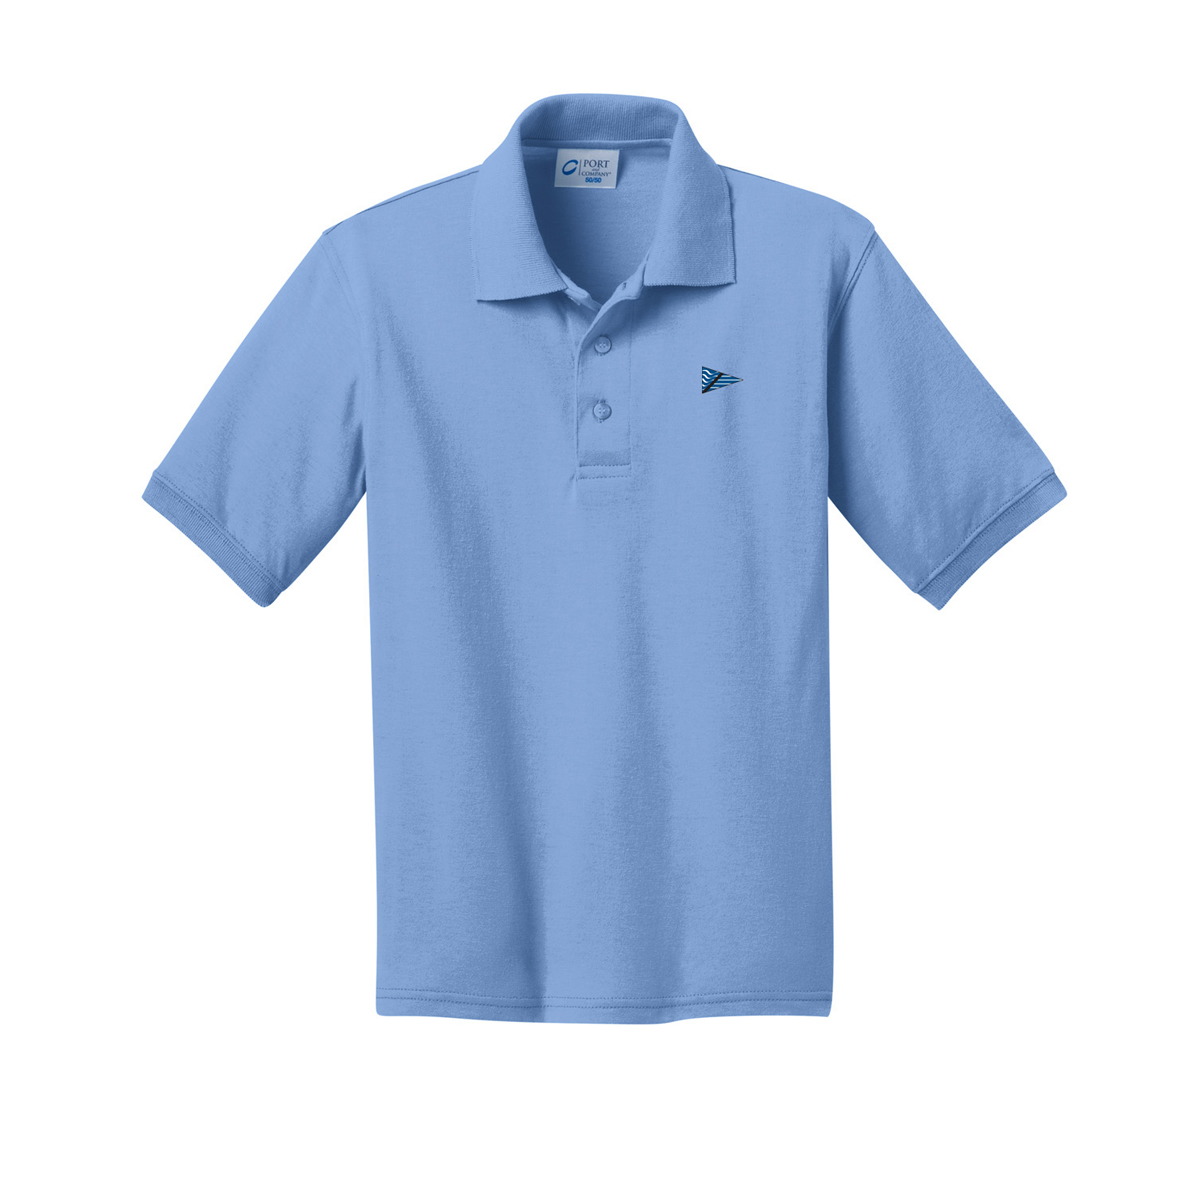 Breakwater Yacht Club - Kid's Cotton Polo